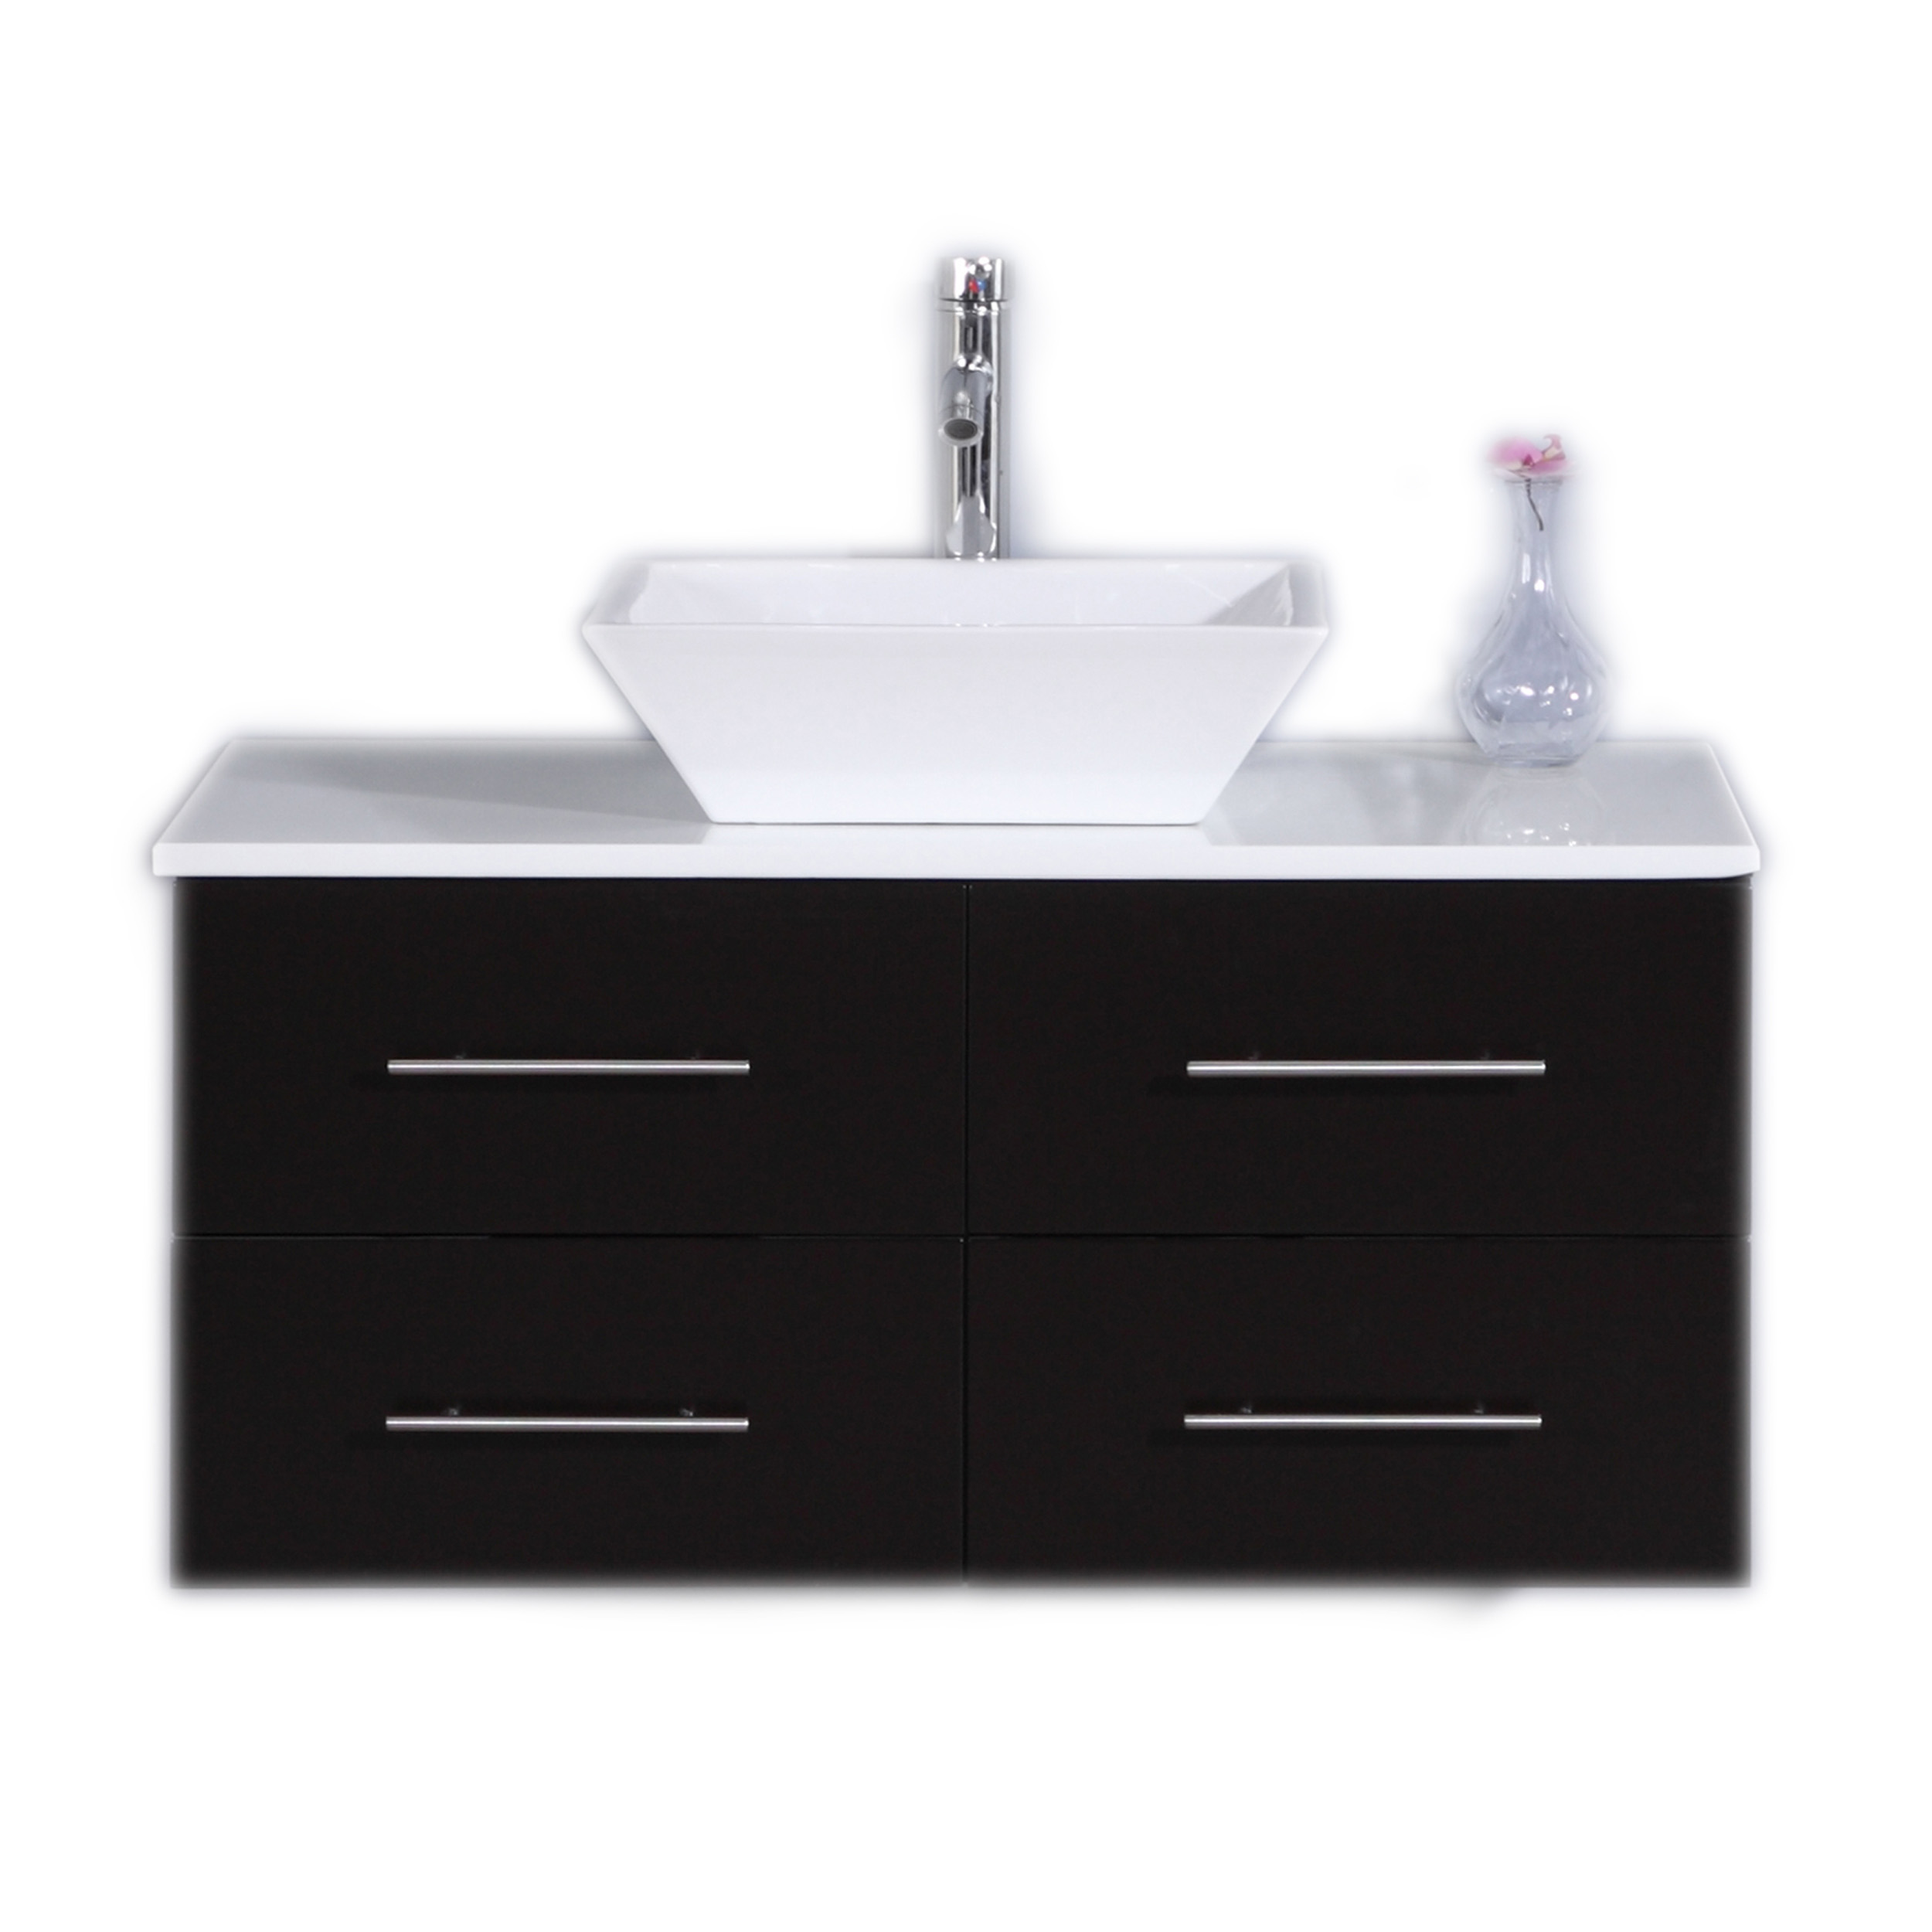 Totti Wave 36 Inch Espresso Modern Bathroom Vanity With Counter Top And Sink Decors Us